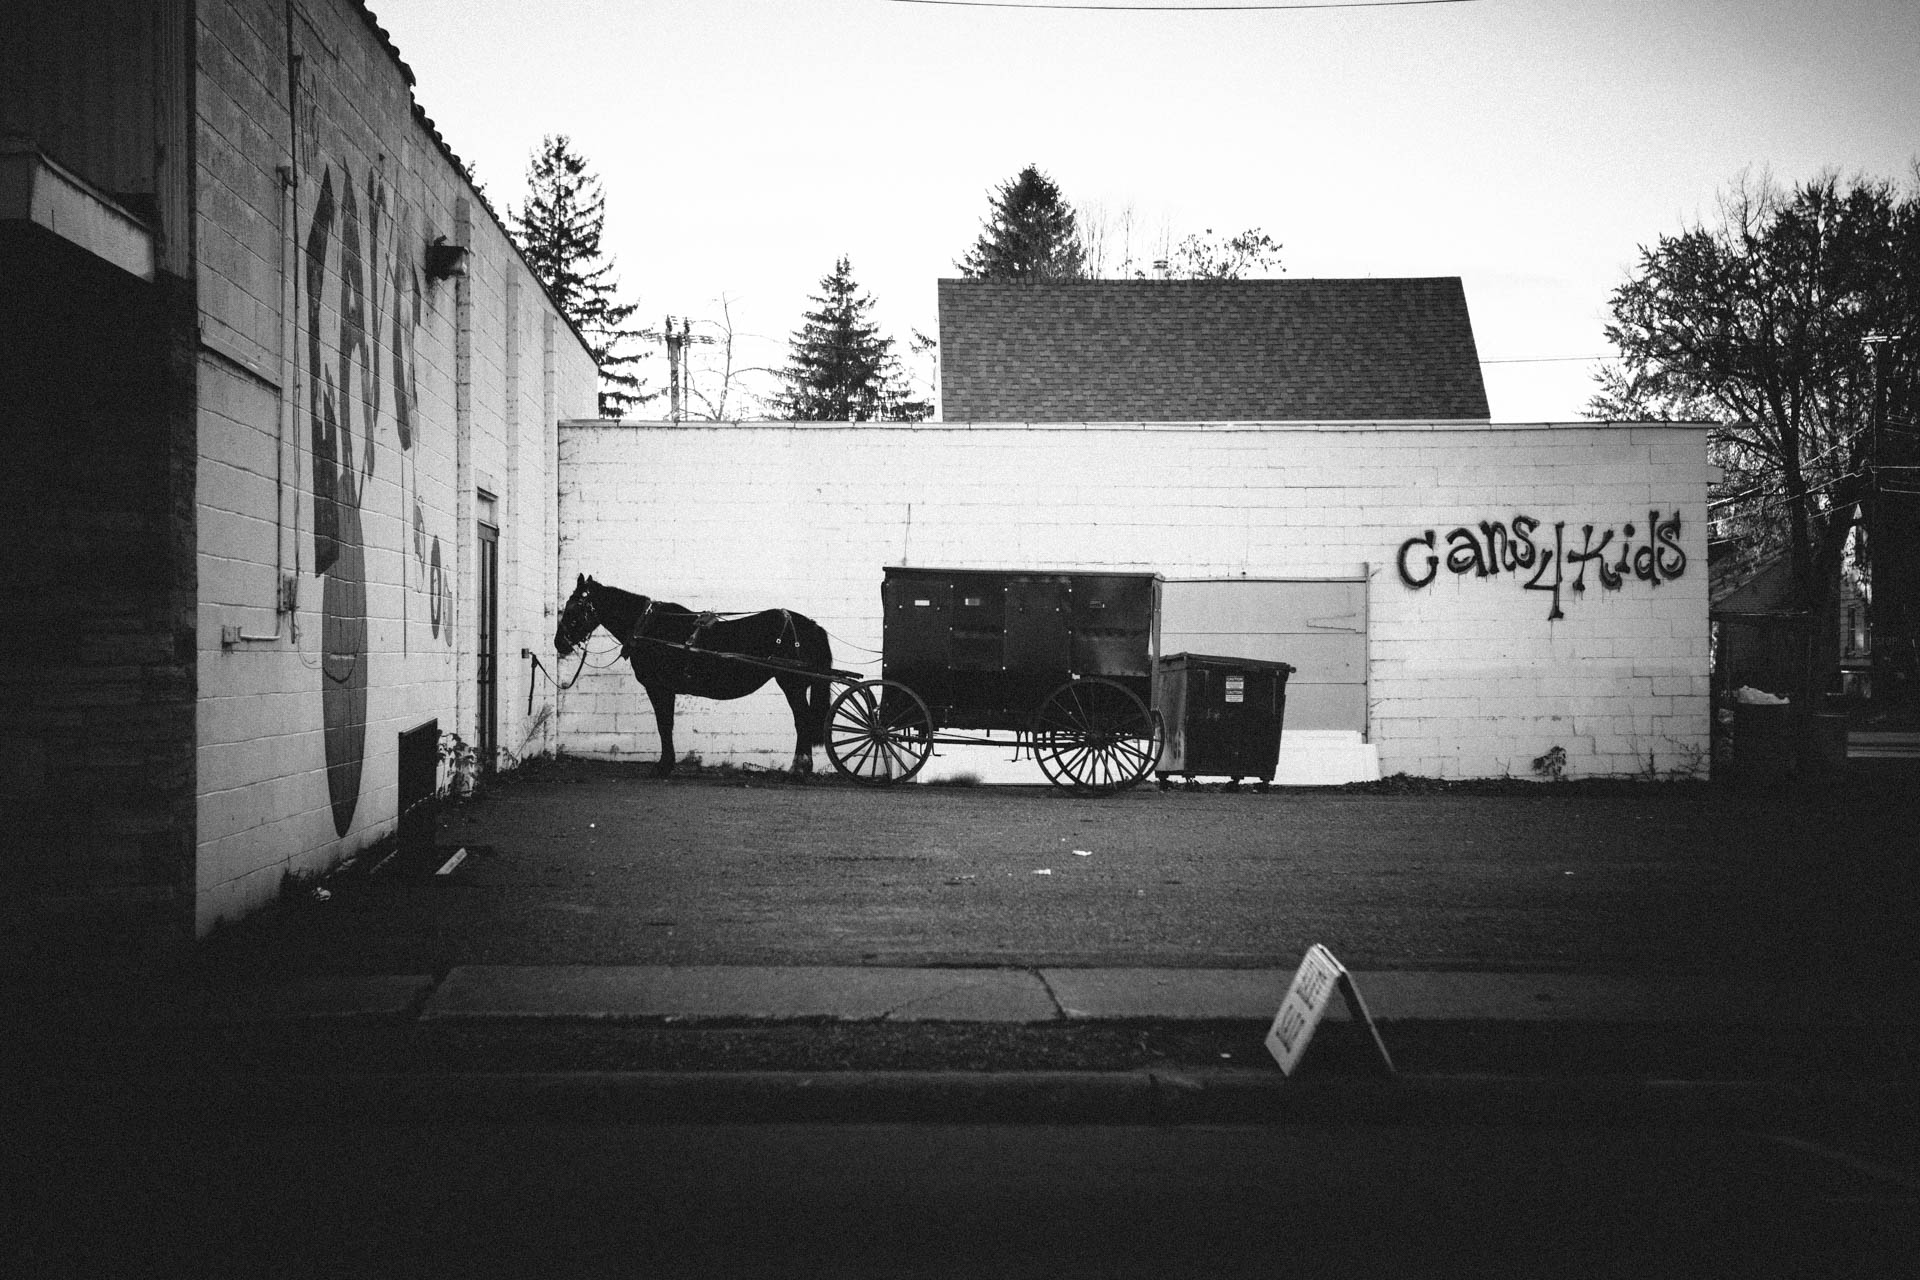 amish-horse-and-buggy-tied-behind-building-cameron-wi-6970